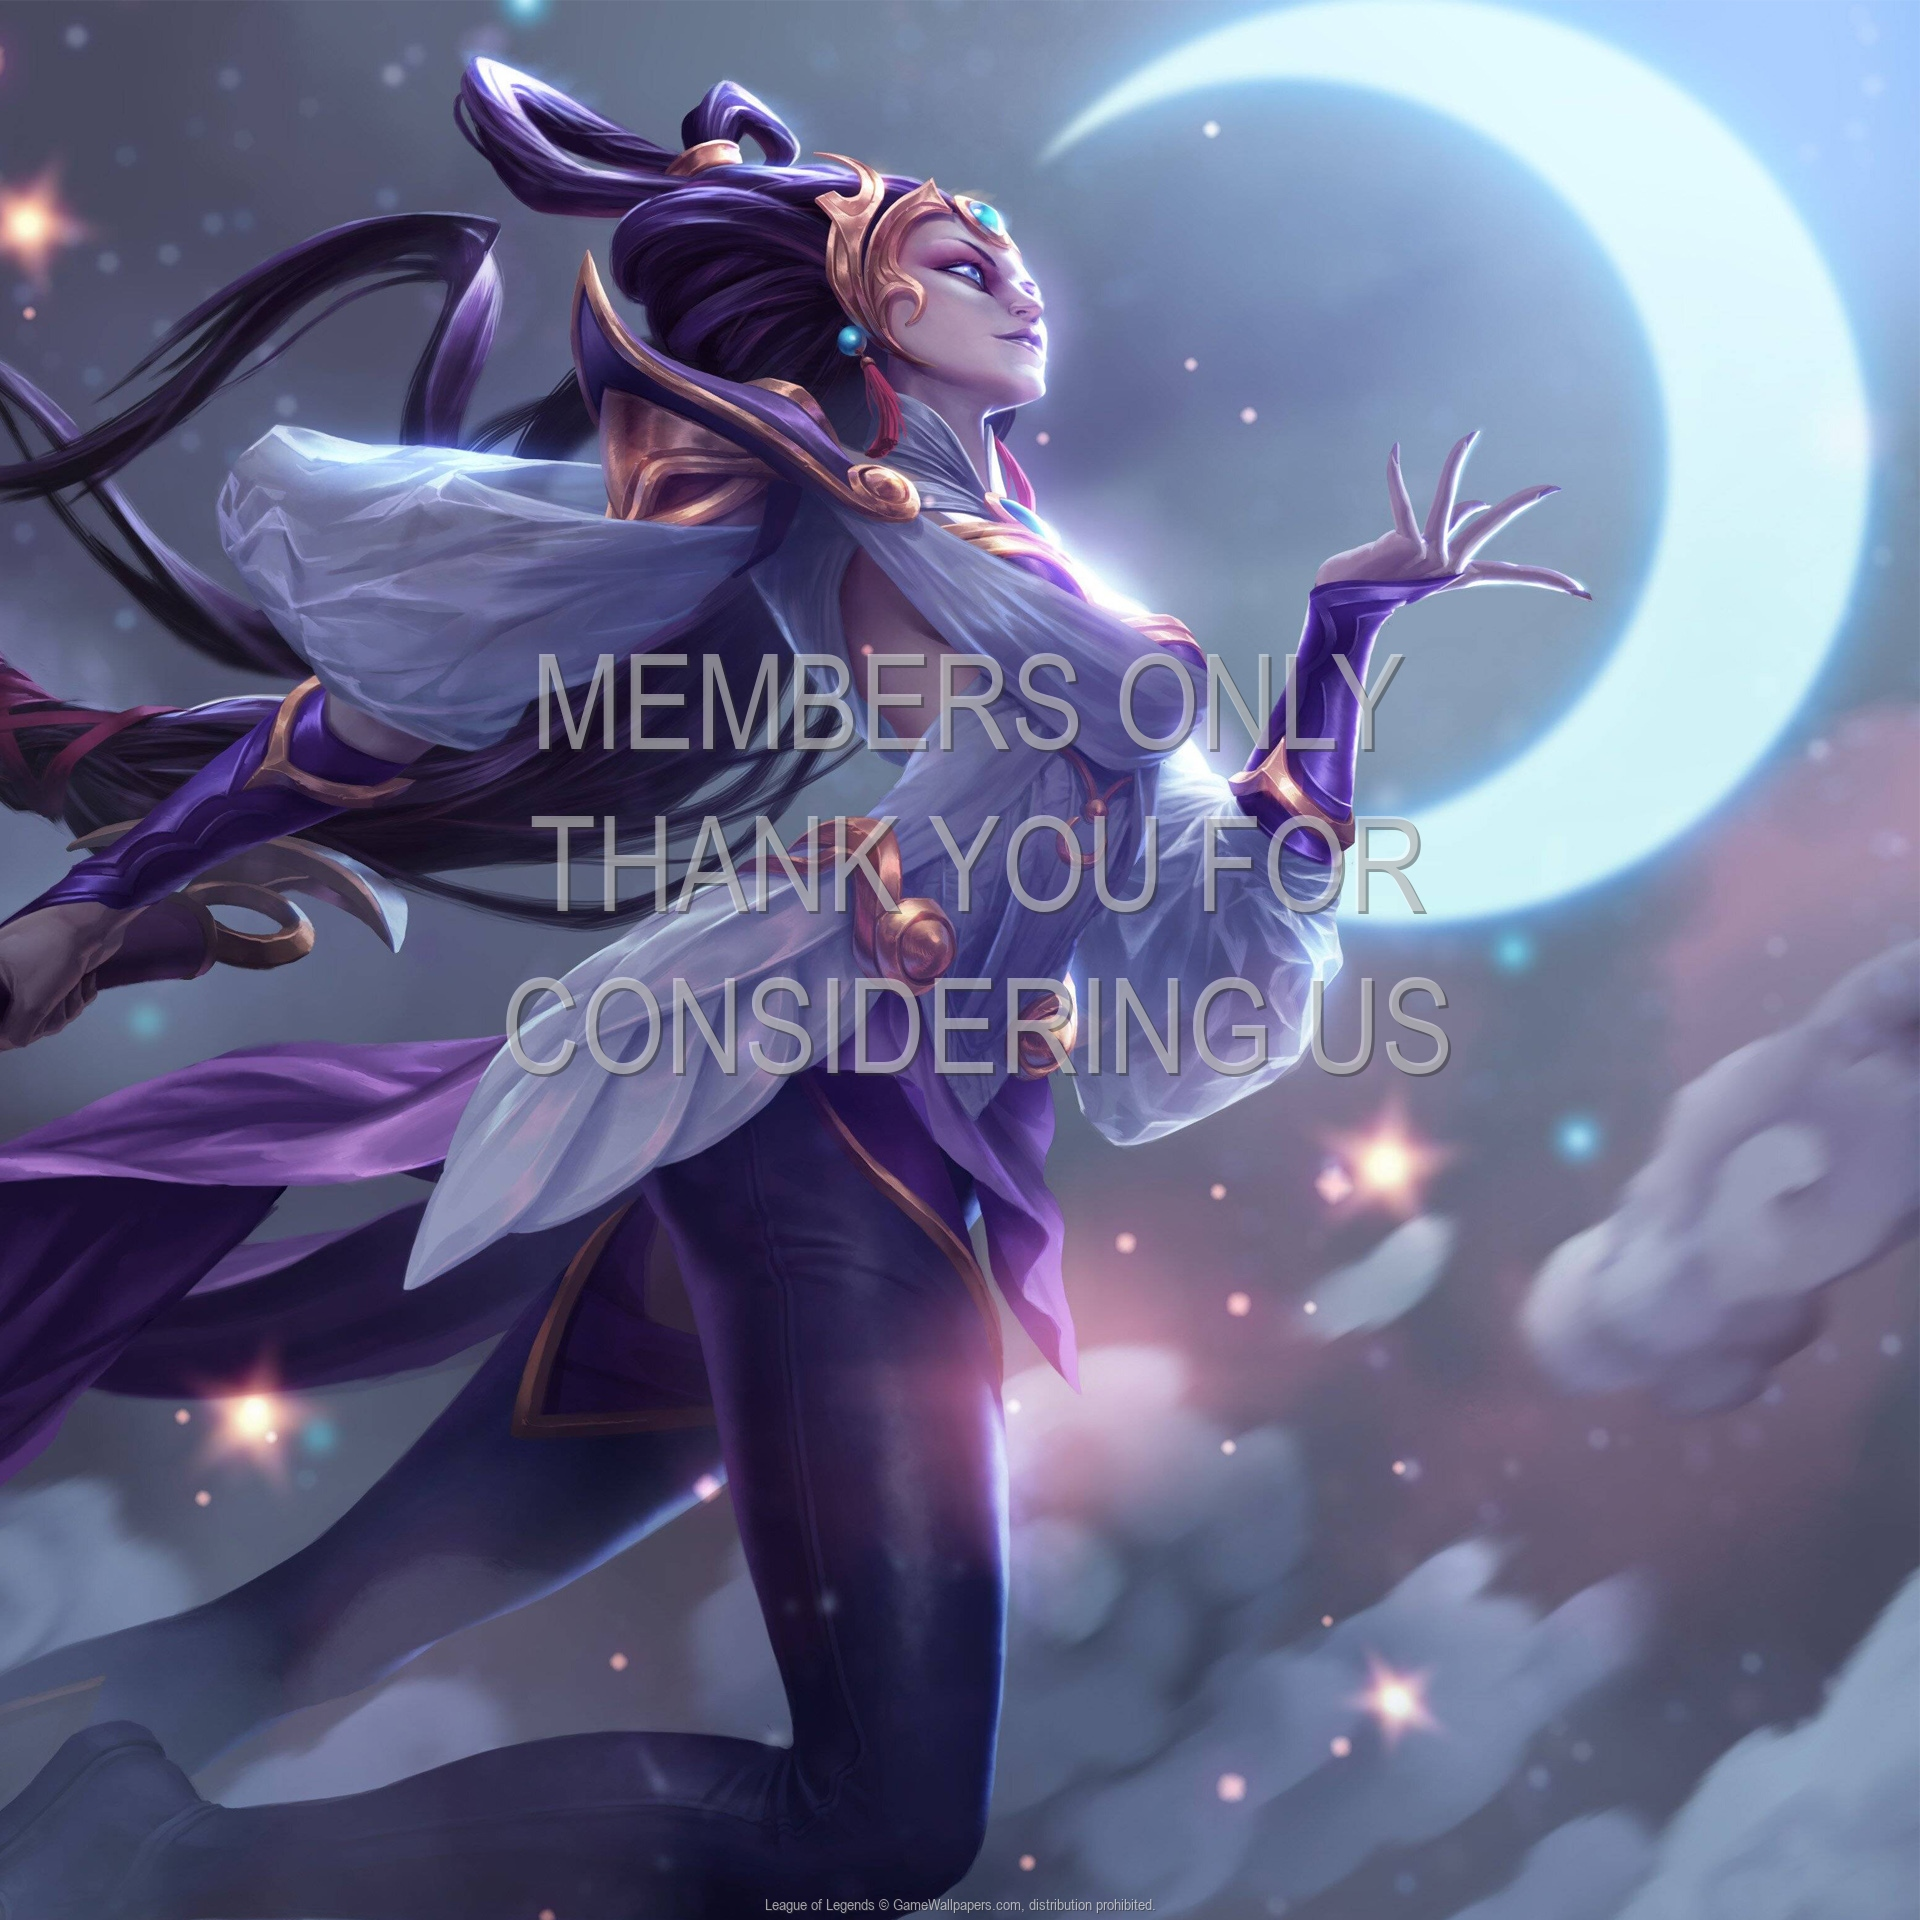 League of Legends 1920x1080 Handy Hintergrundbild 38